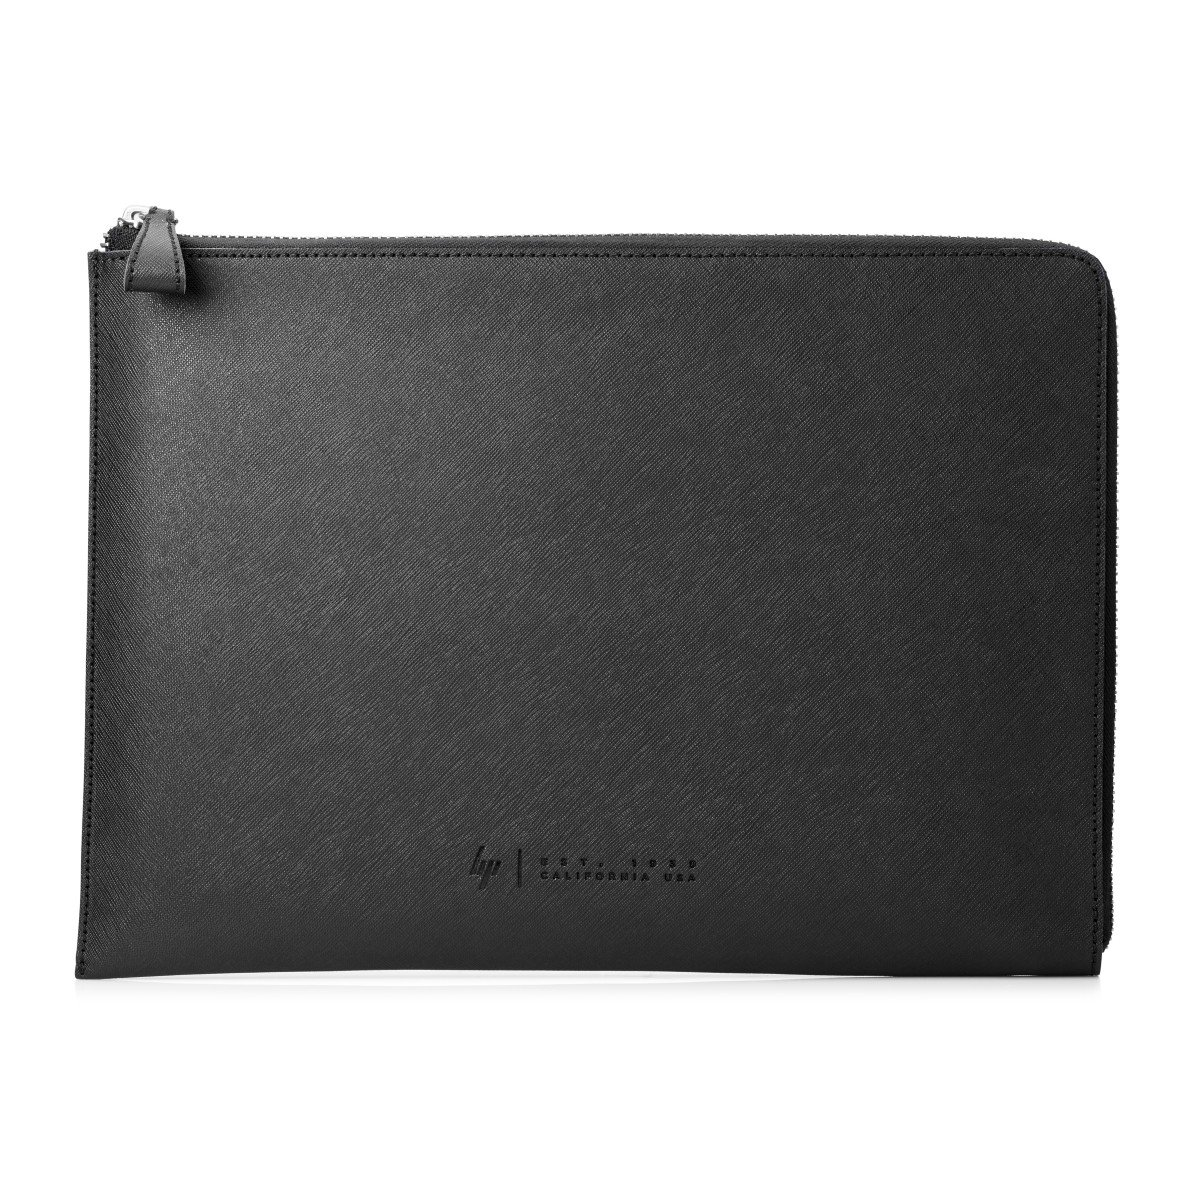 HP Spectre Split Leather Sleeve, Custodia in Cuoio per Notebook Fino a 15.6, Silver 1ZX69AA